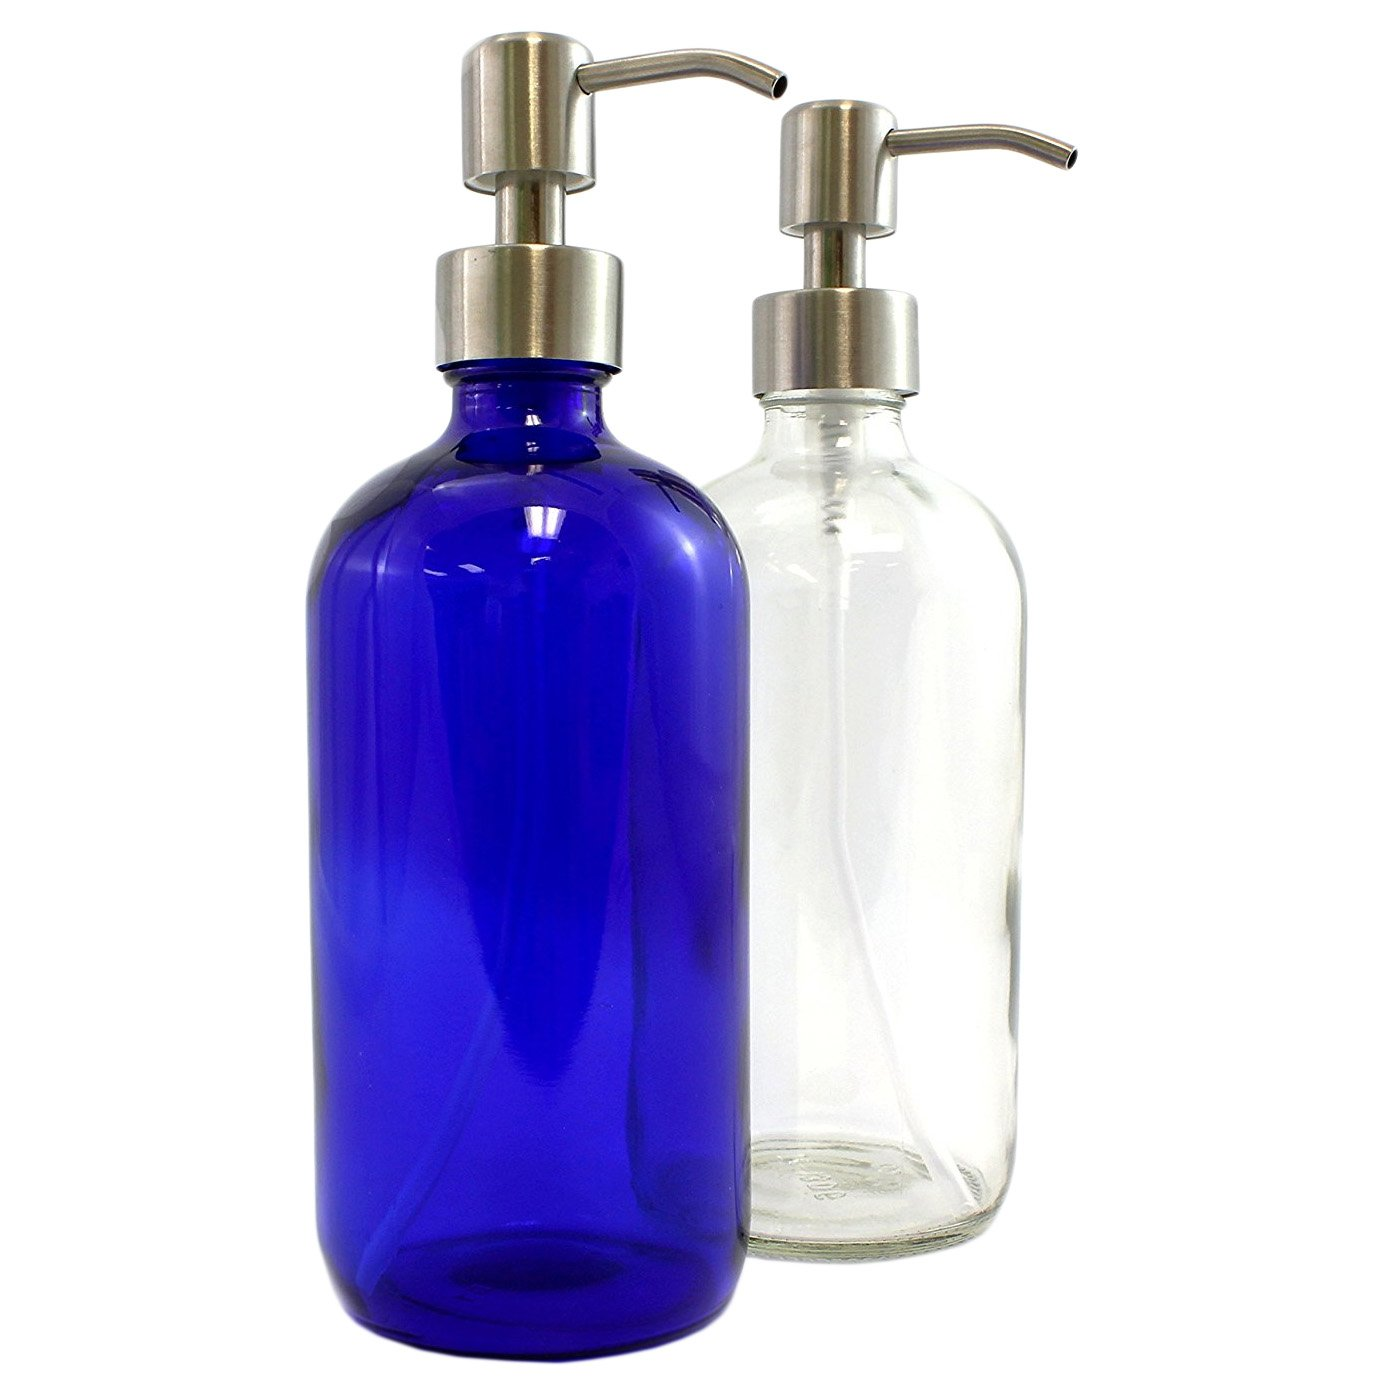 Cornucopia Brands Clear & Cobalt Blue 16-Ounce Glass Bottles with Stainless Steel Pump Nozzles Included (2 Pack); Empty Multipurpose Bottles Ideal for Lotion & Liquid Soap